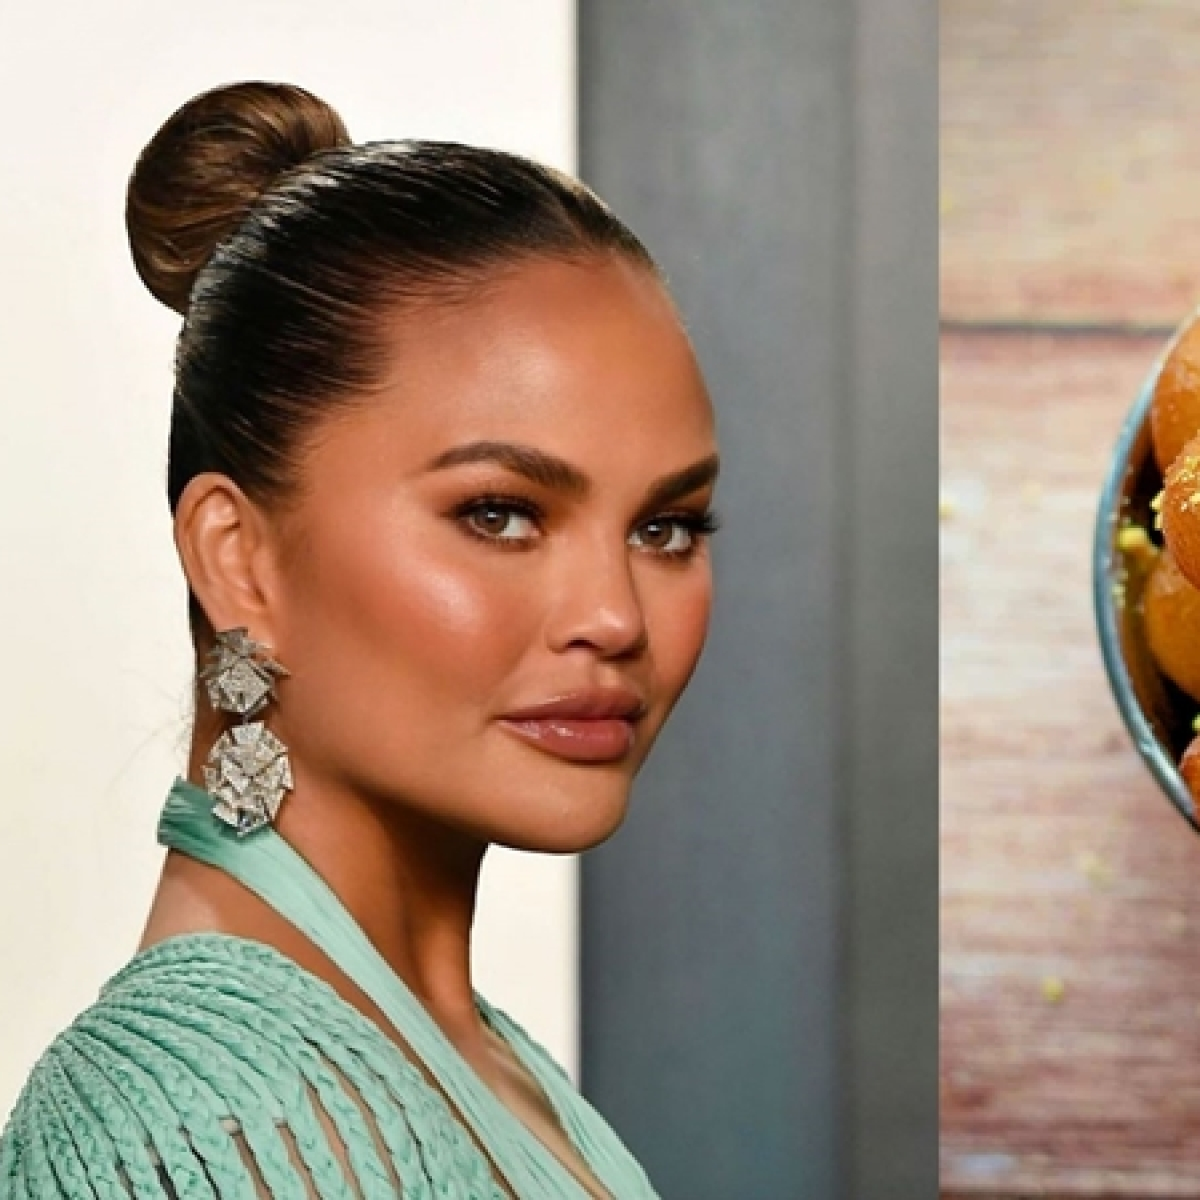 Chrissy Teigen asks for tips as she's about to make 'gulab jamun'